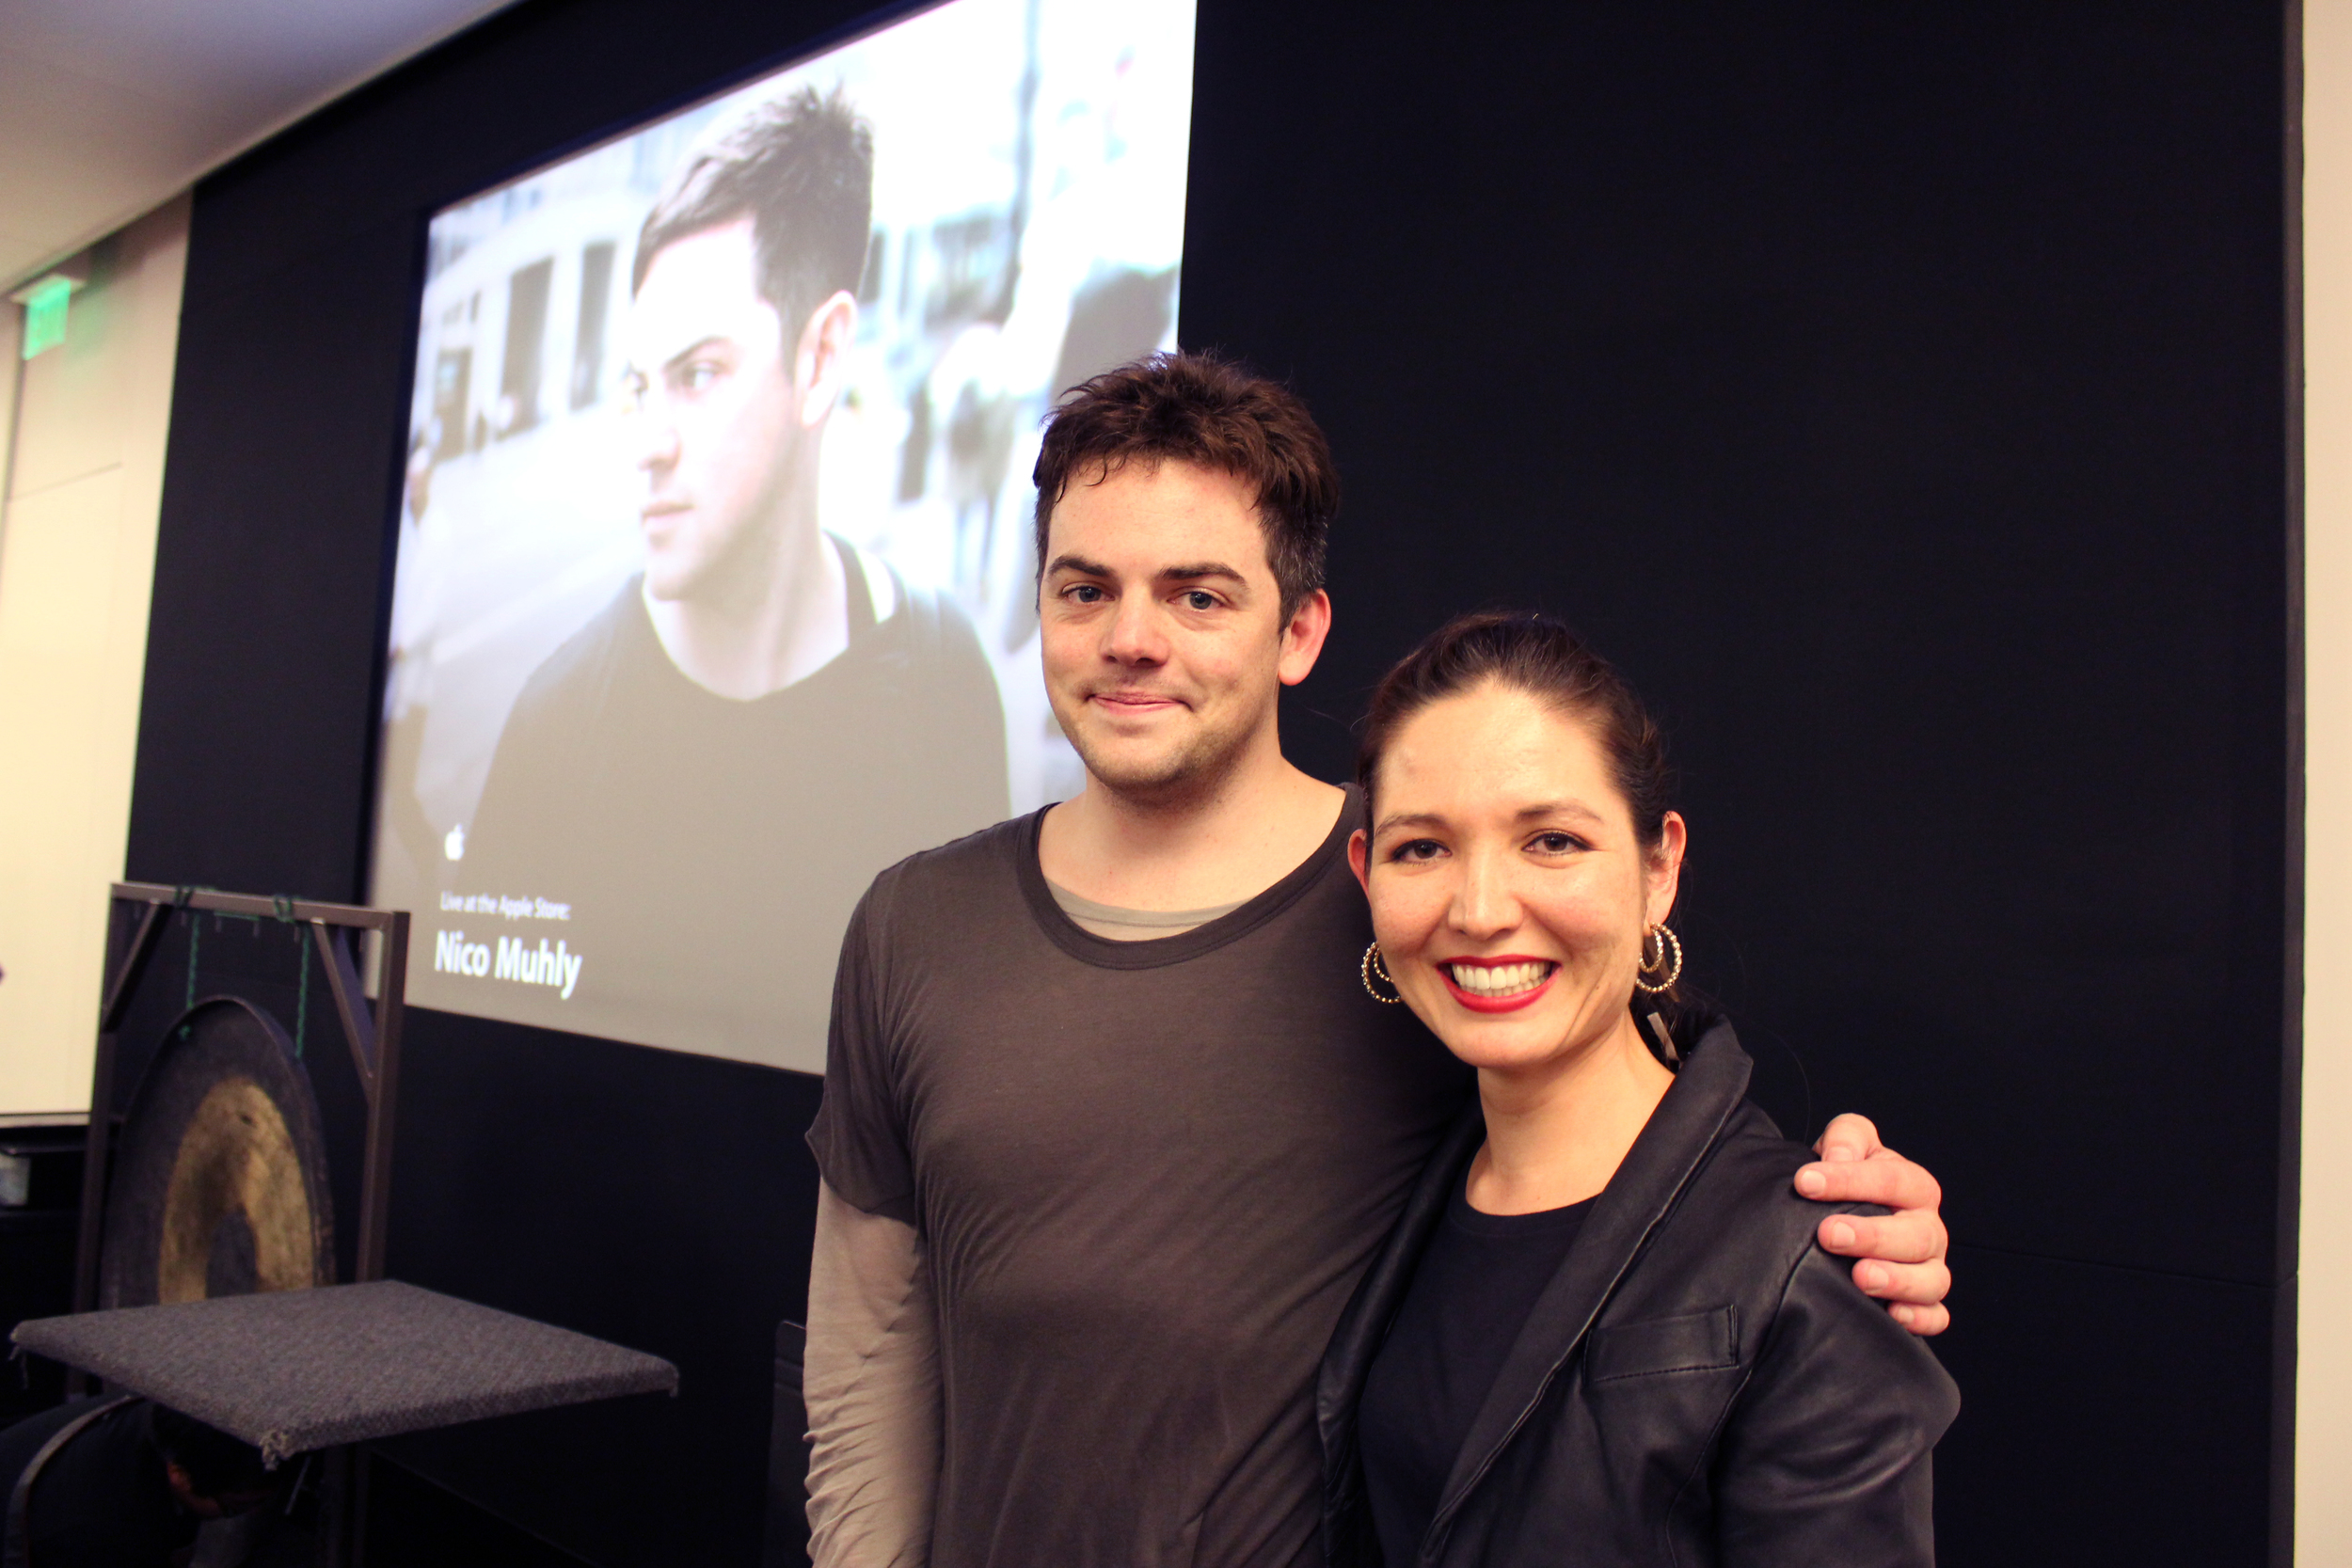 Mod squad with Nico Muhly promoting his album